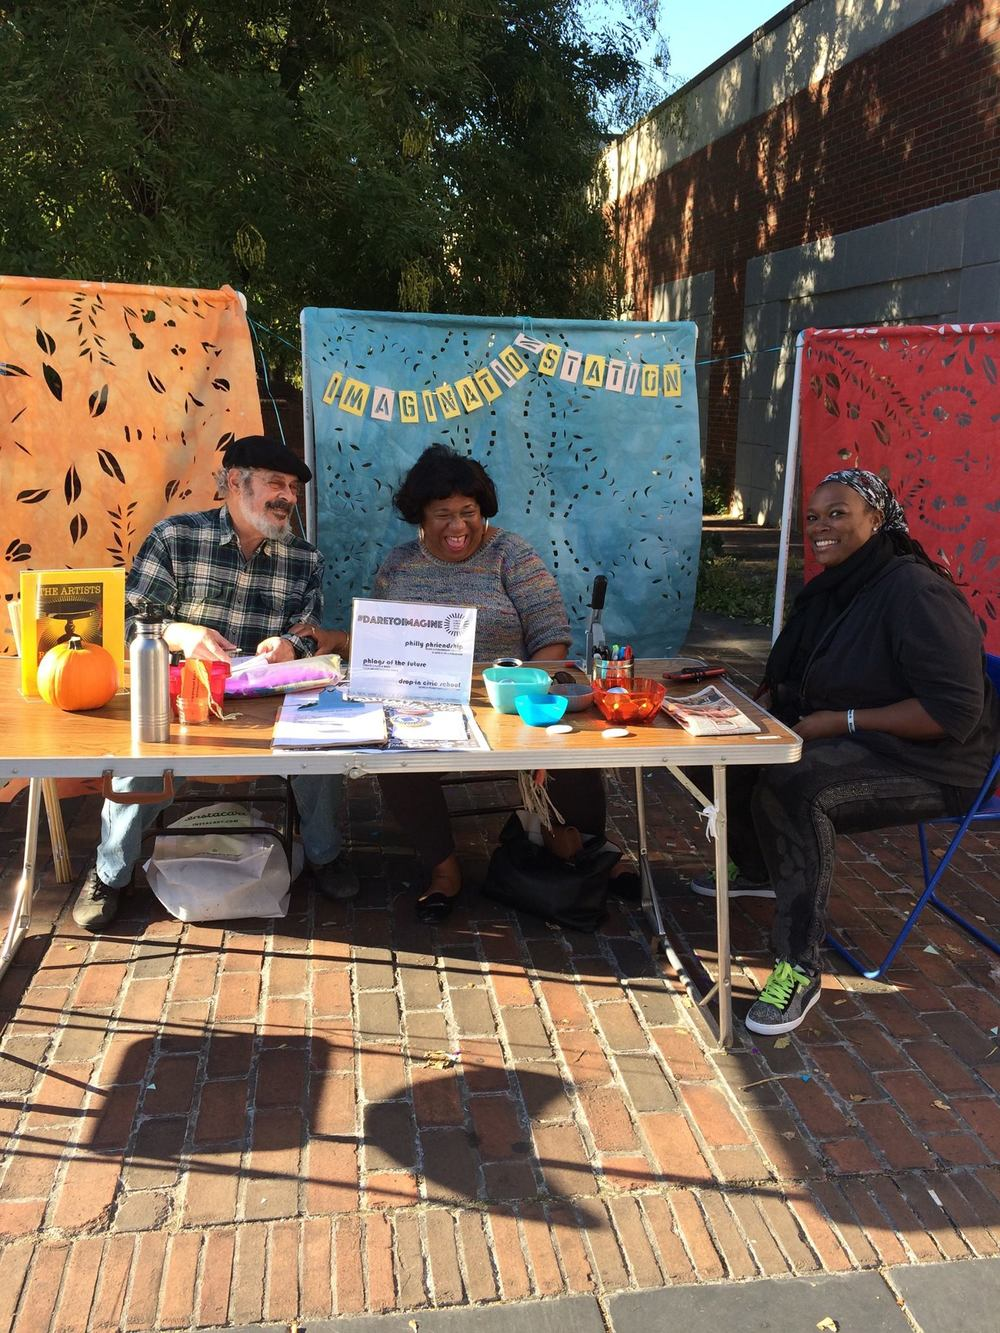 Citizen Artists Lenny Belasco, Juliette Quoquoi and Tieshka Smith hold down the Germantown Imagination Station.  (Photo by Yolanda Wisher, October 2016)